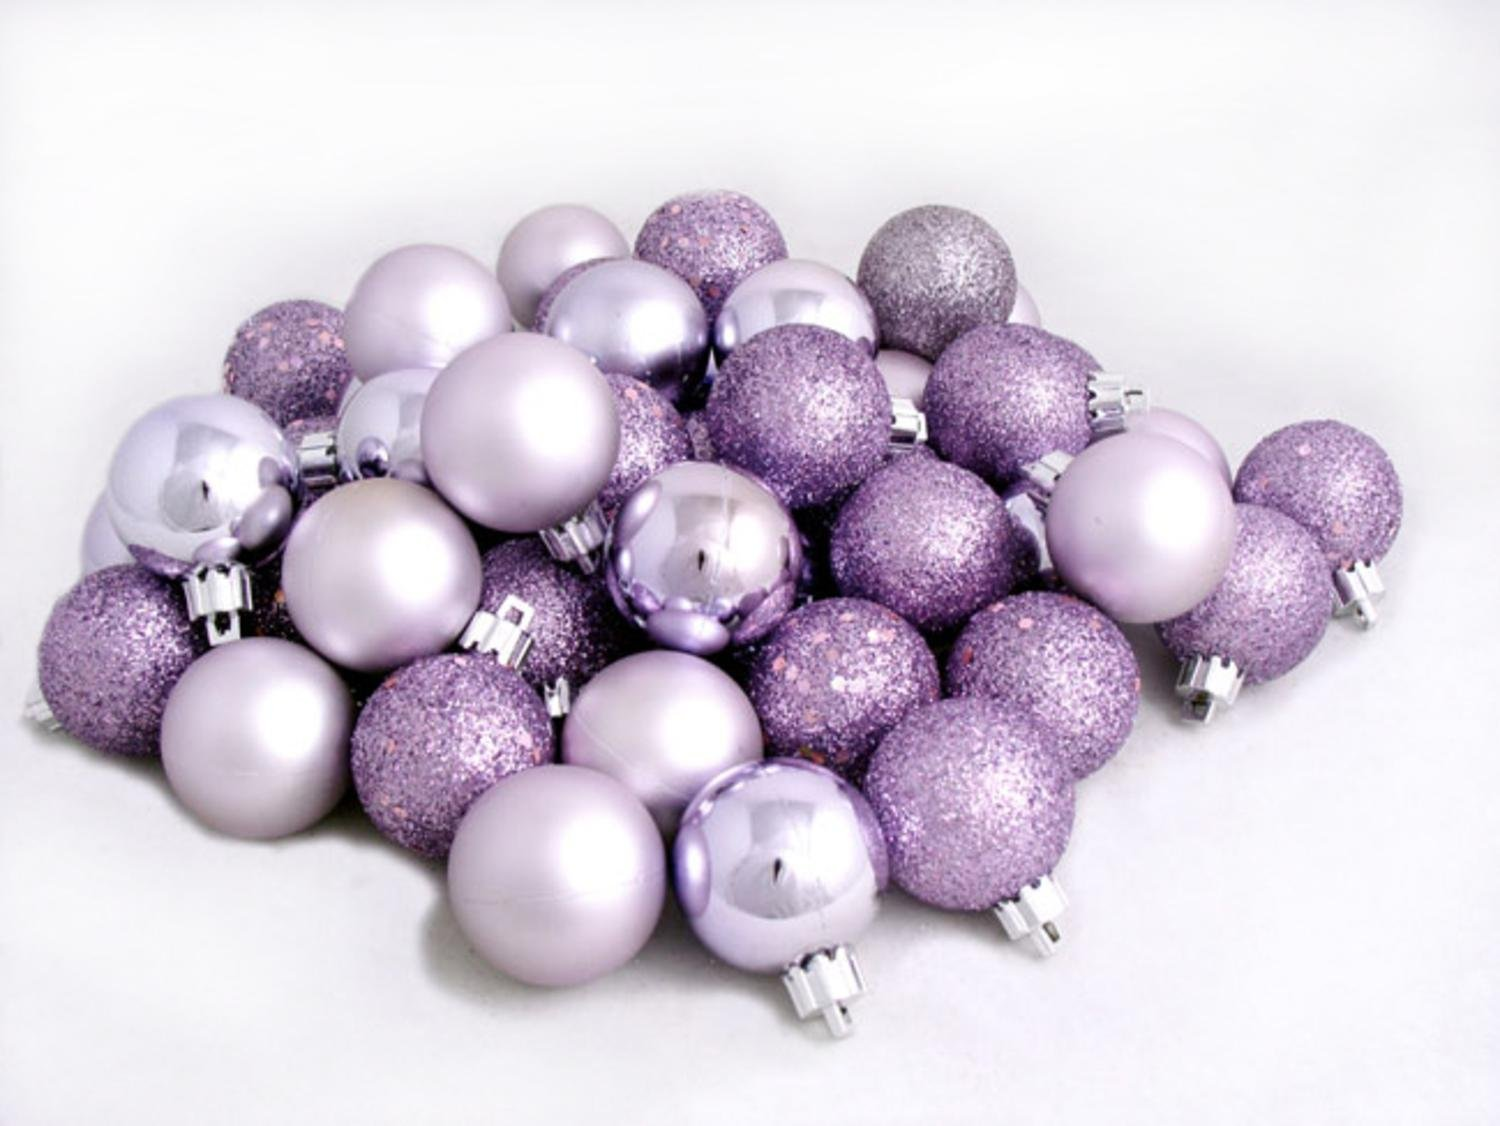 60ct lavender purple shatterproof 4 finish christmas ball ornaments 25 60mm amazoncouk kitchen home